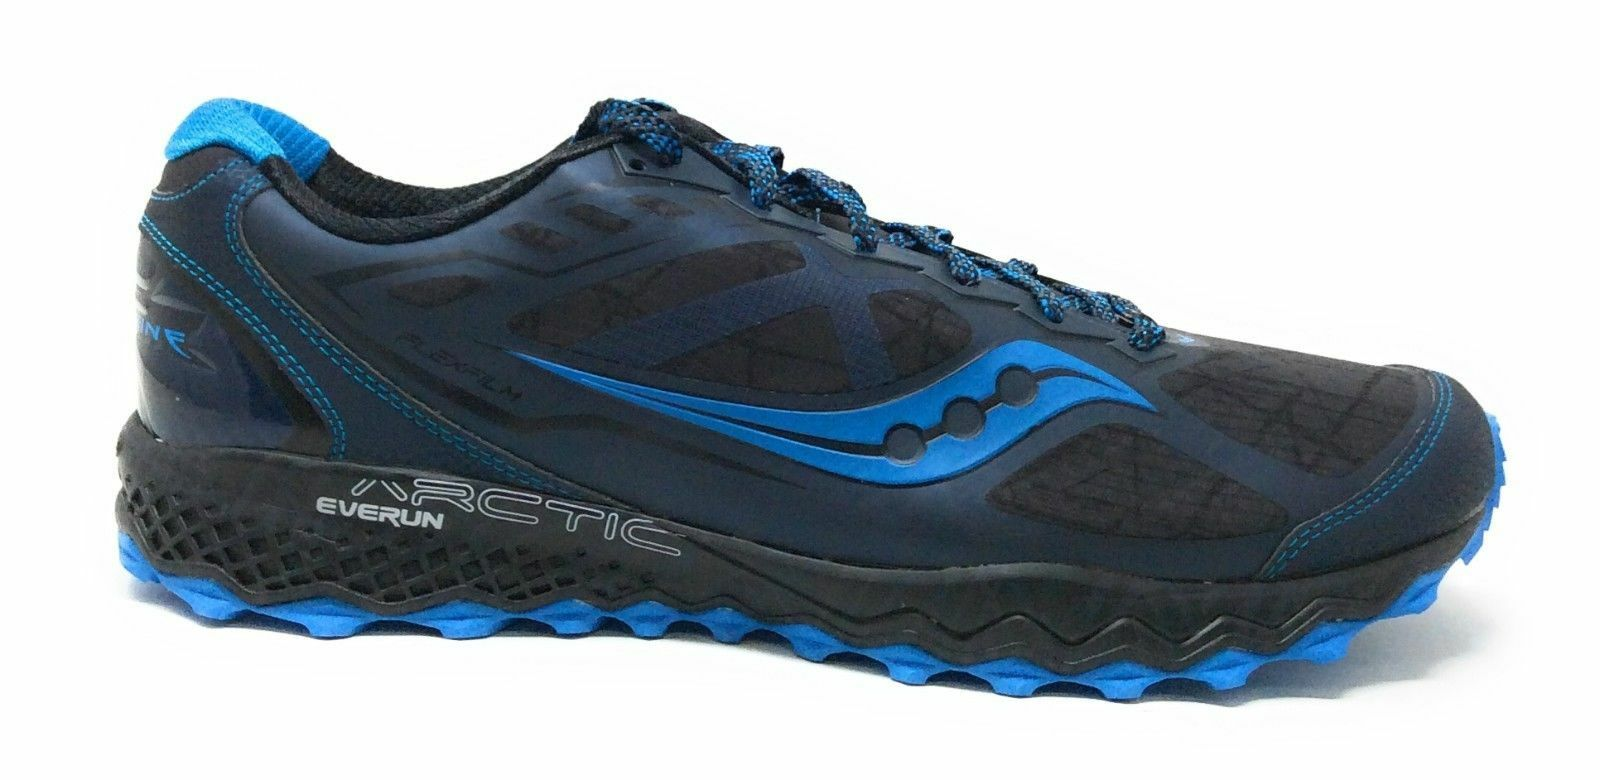 Saucony Mens Peregrine 6 ICE+ Running Sneaker Black bluee Size 7.5 M US